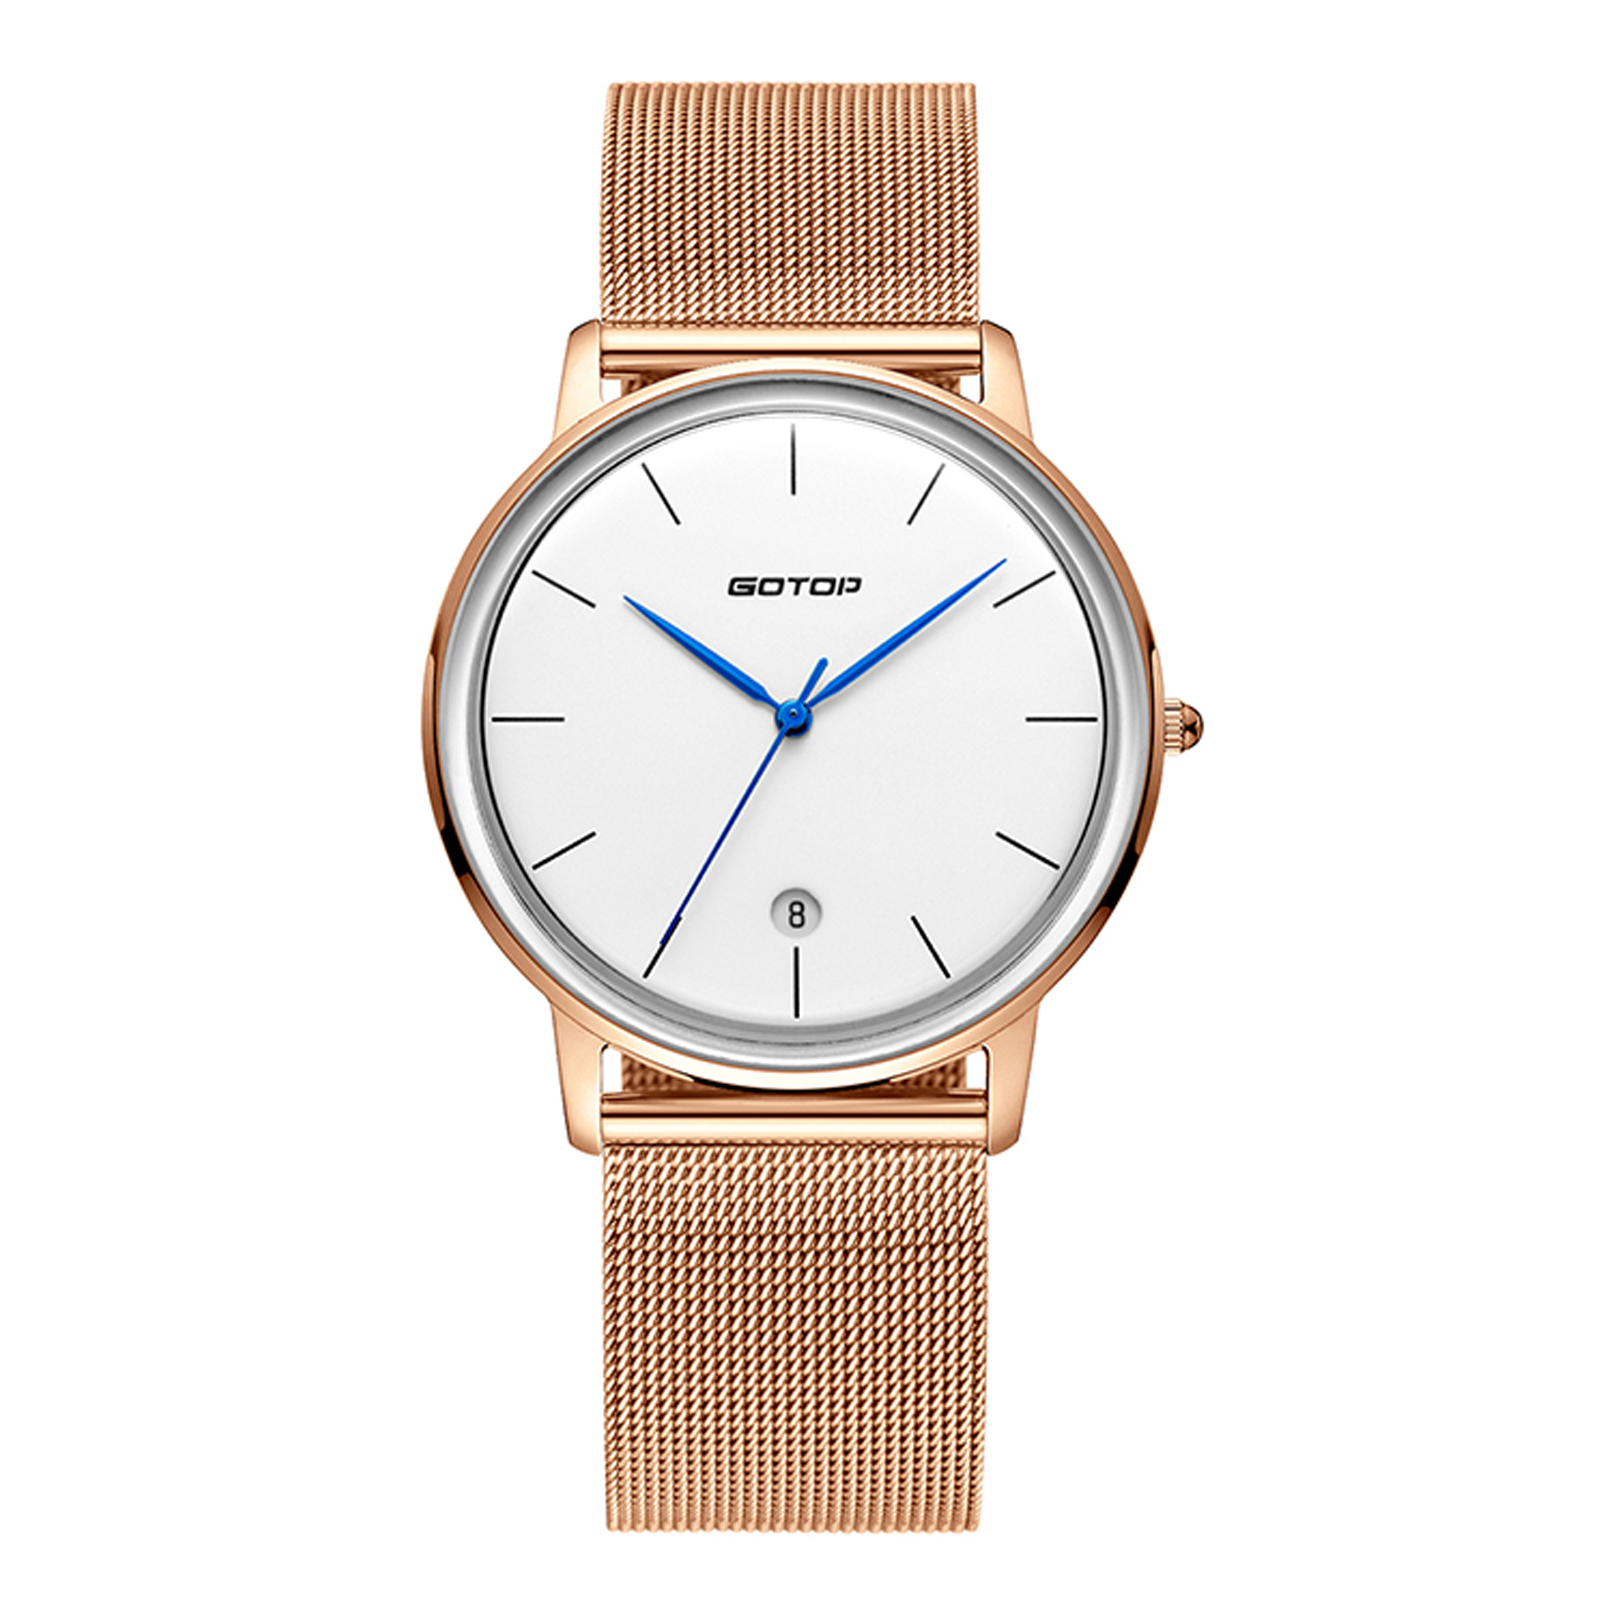 Gold Men's Watch With Metal Mesh Band